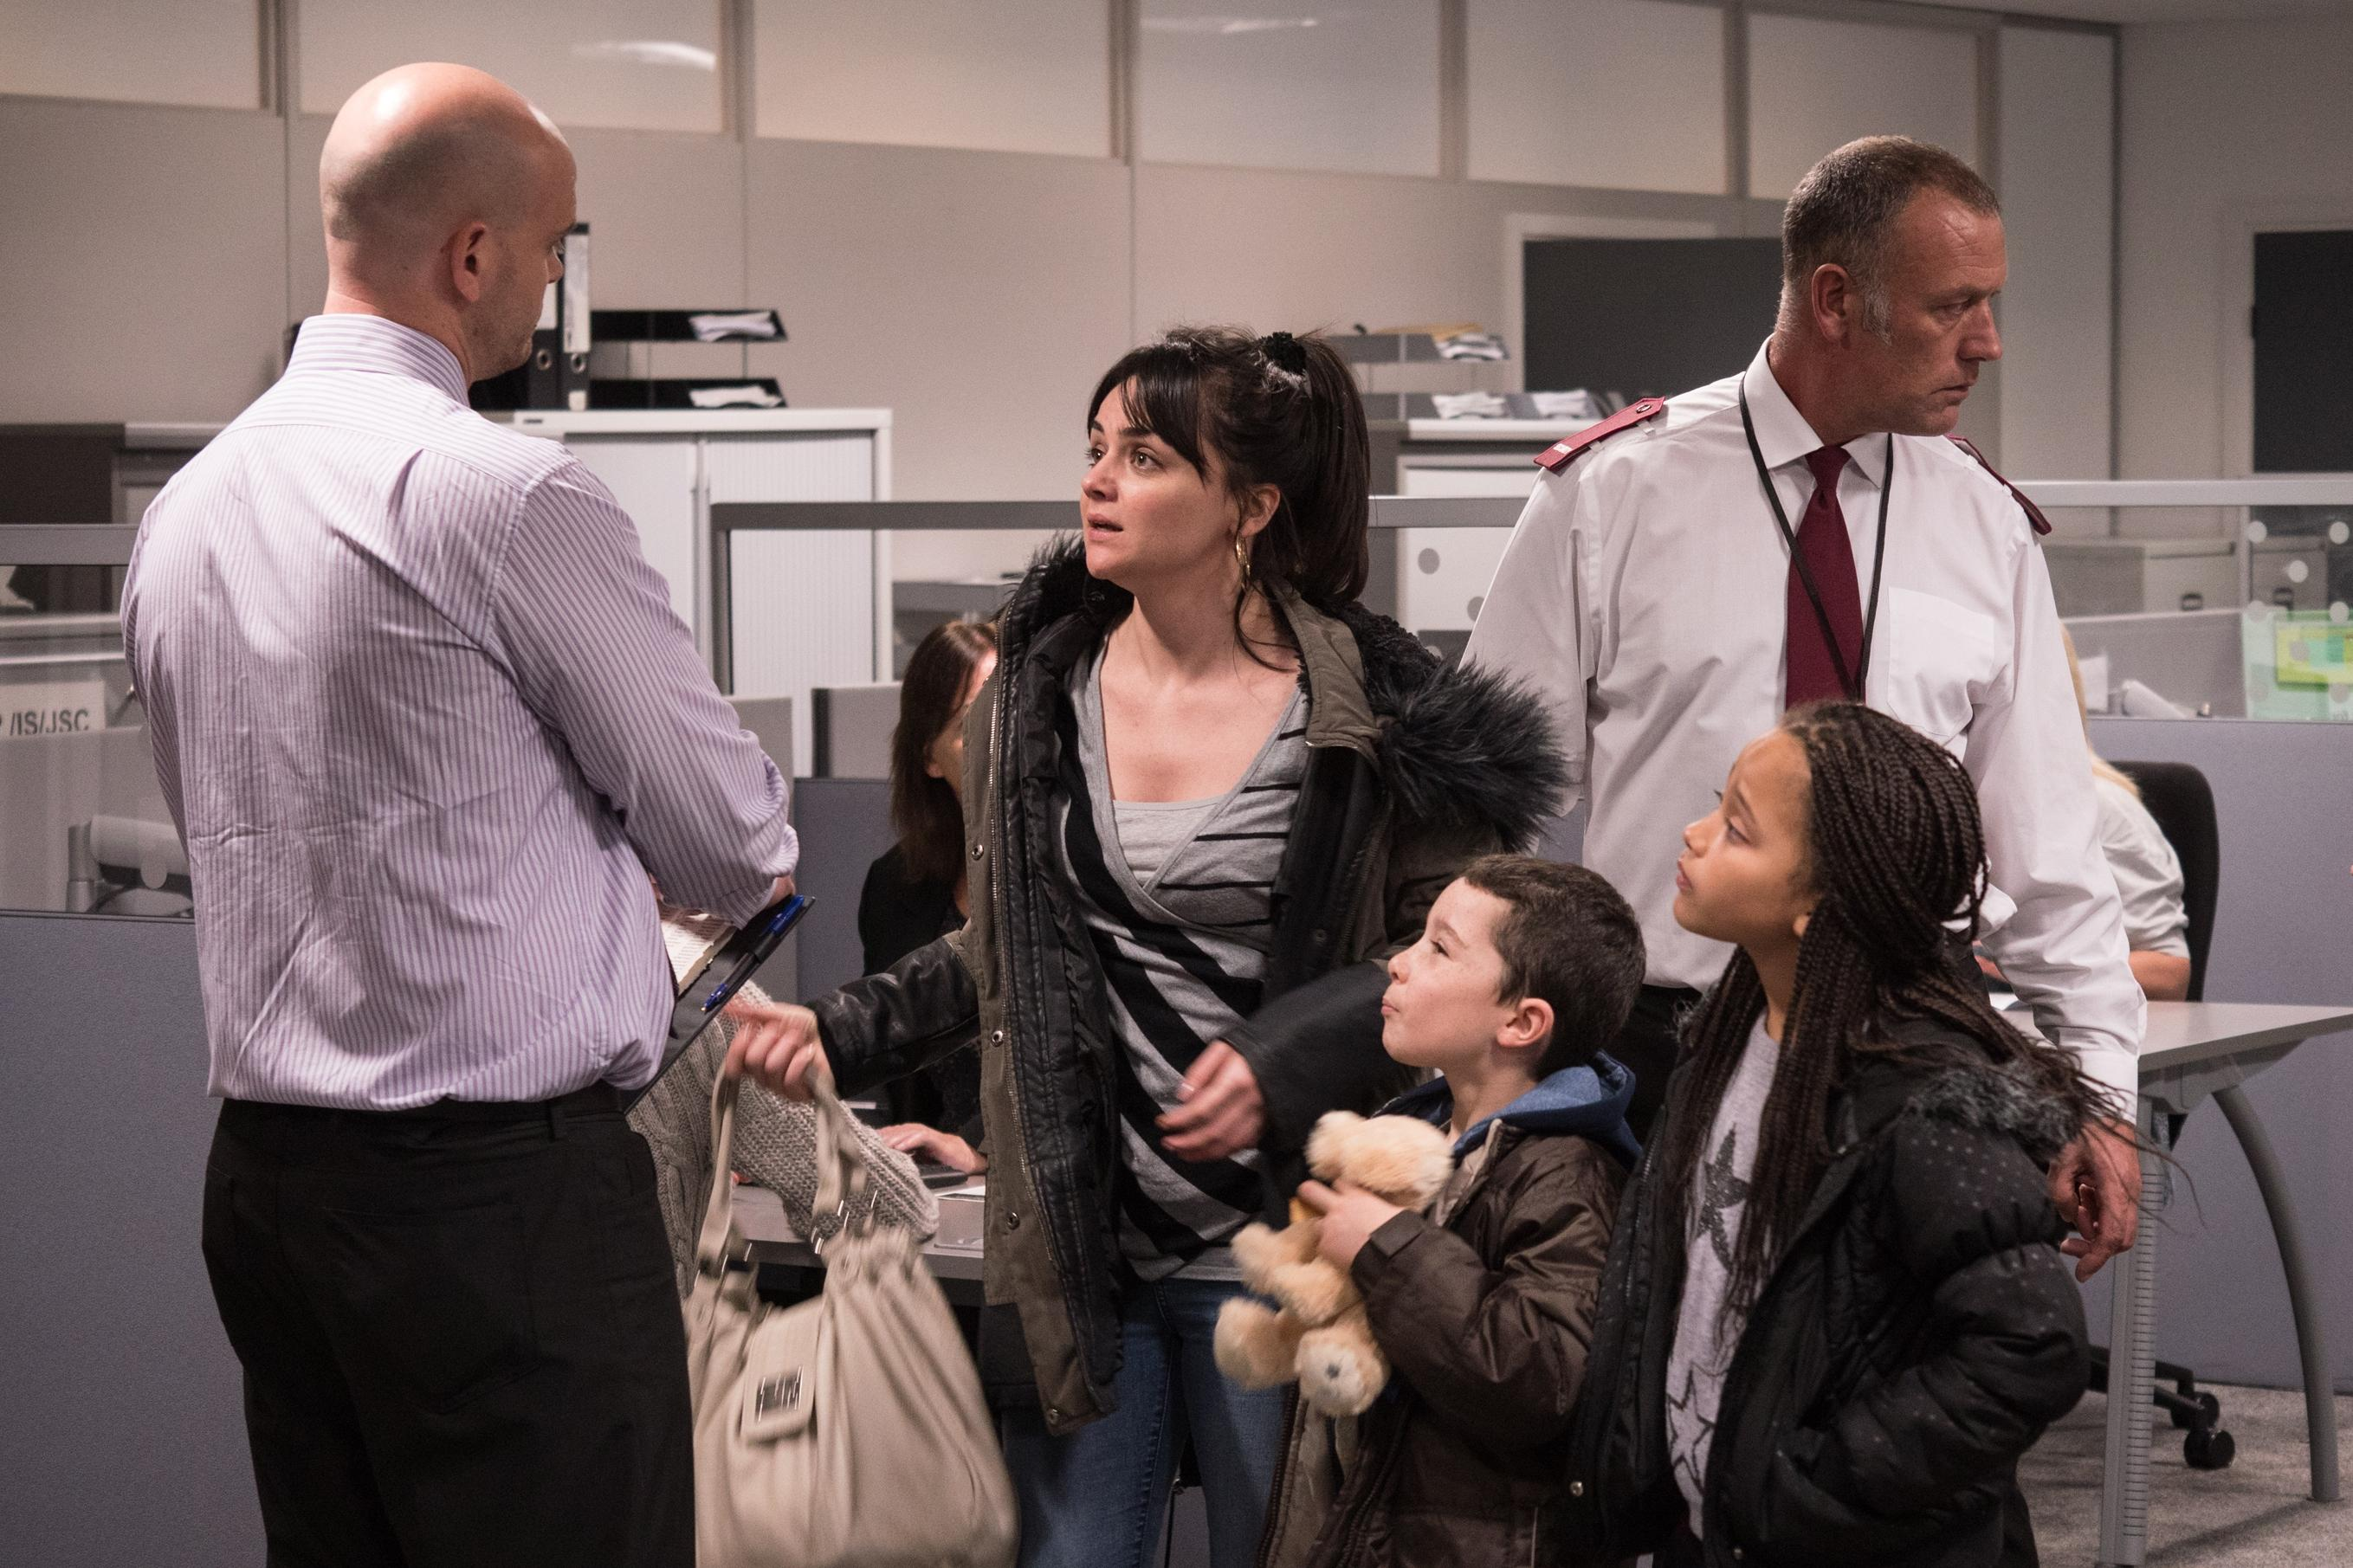 cannes-review-ken-loachs-personal-and-touching-i-daniel-blake.jpeg